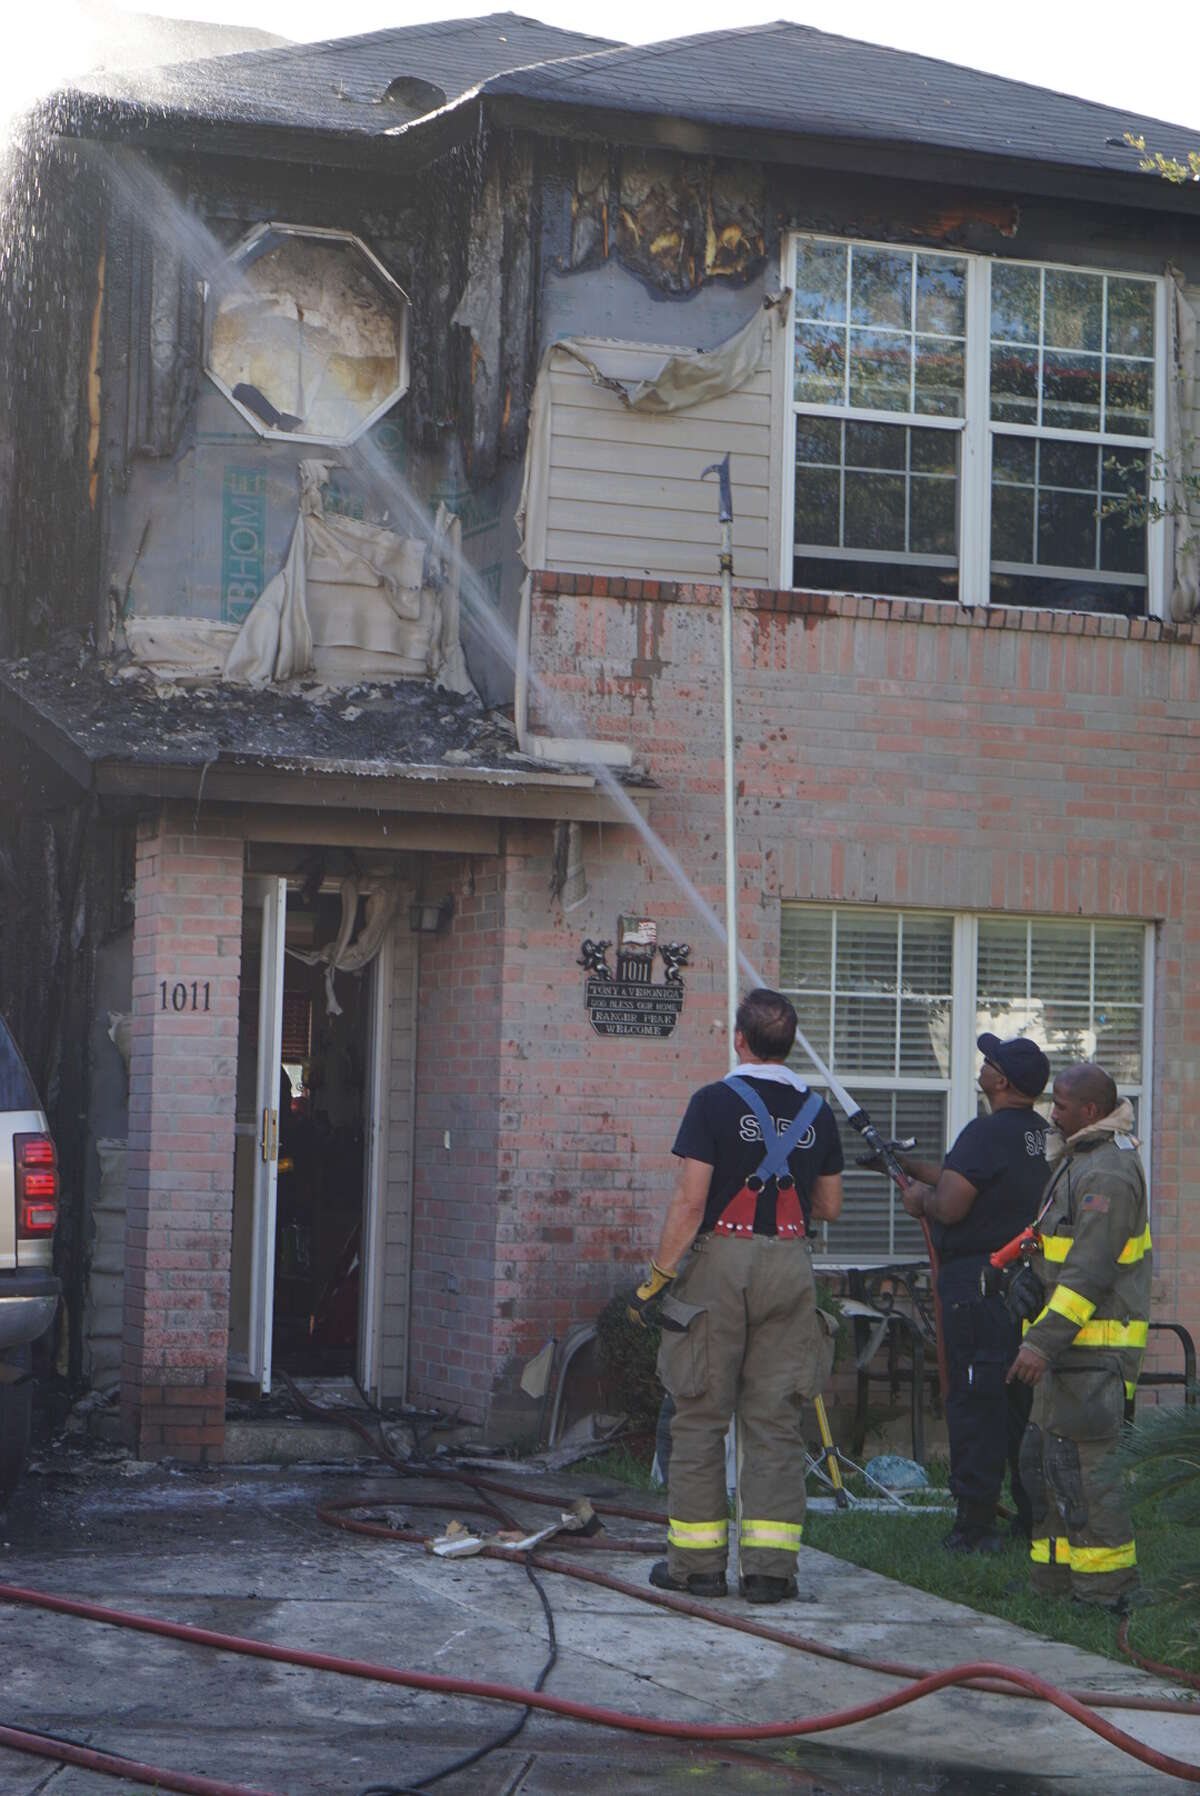 Flames burned through a home Tuesday afternoon after a vehicle in the driveway caught fire at about 5 p.m. in the 1000 block of Ranger Peak on the Northwest Side.